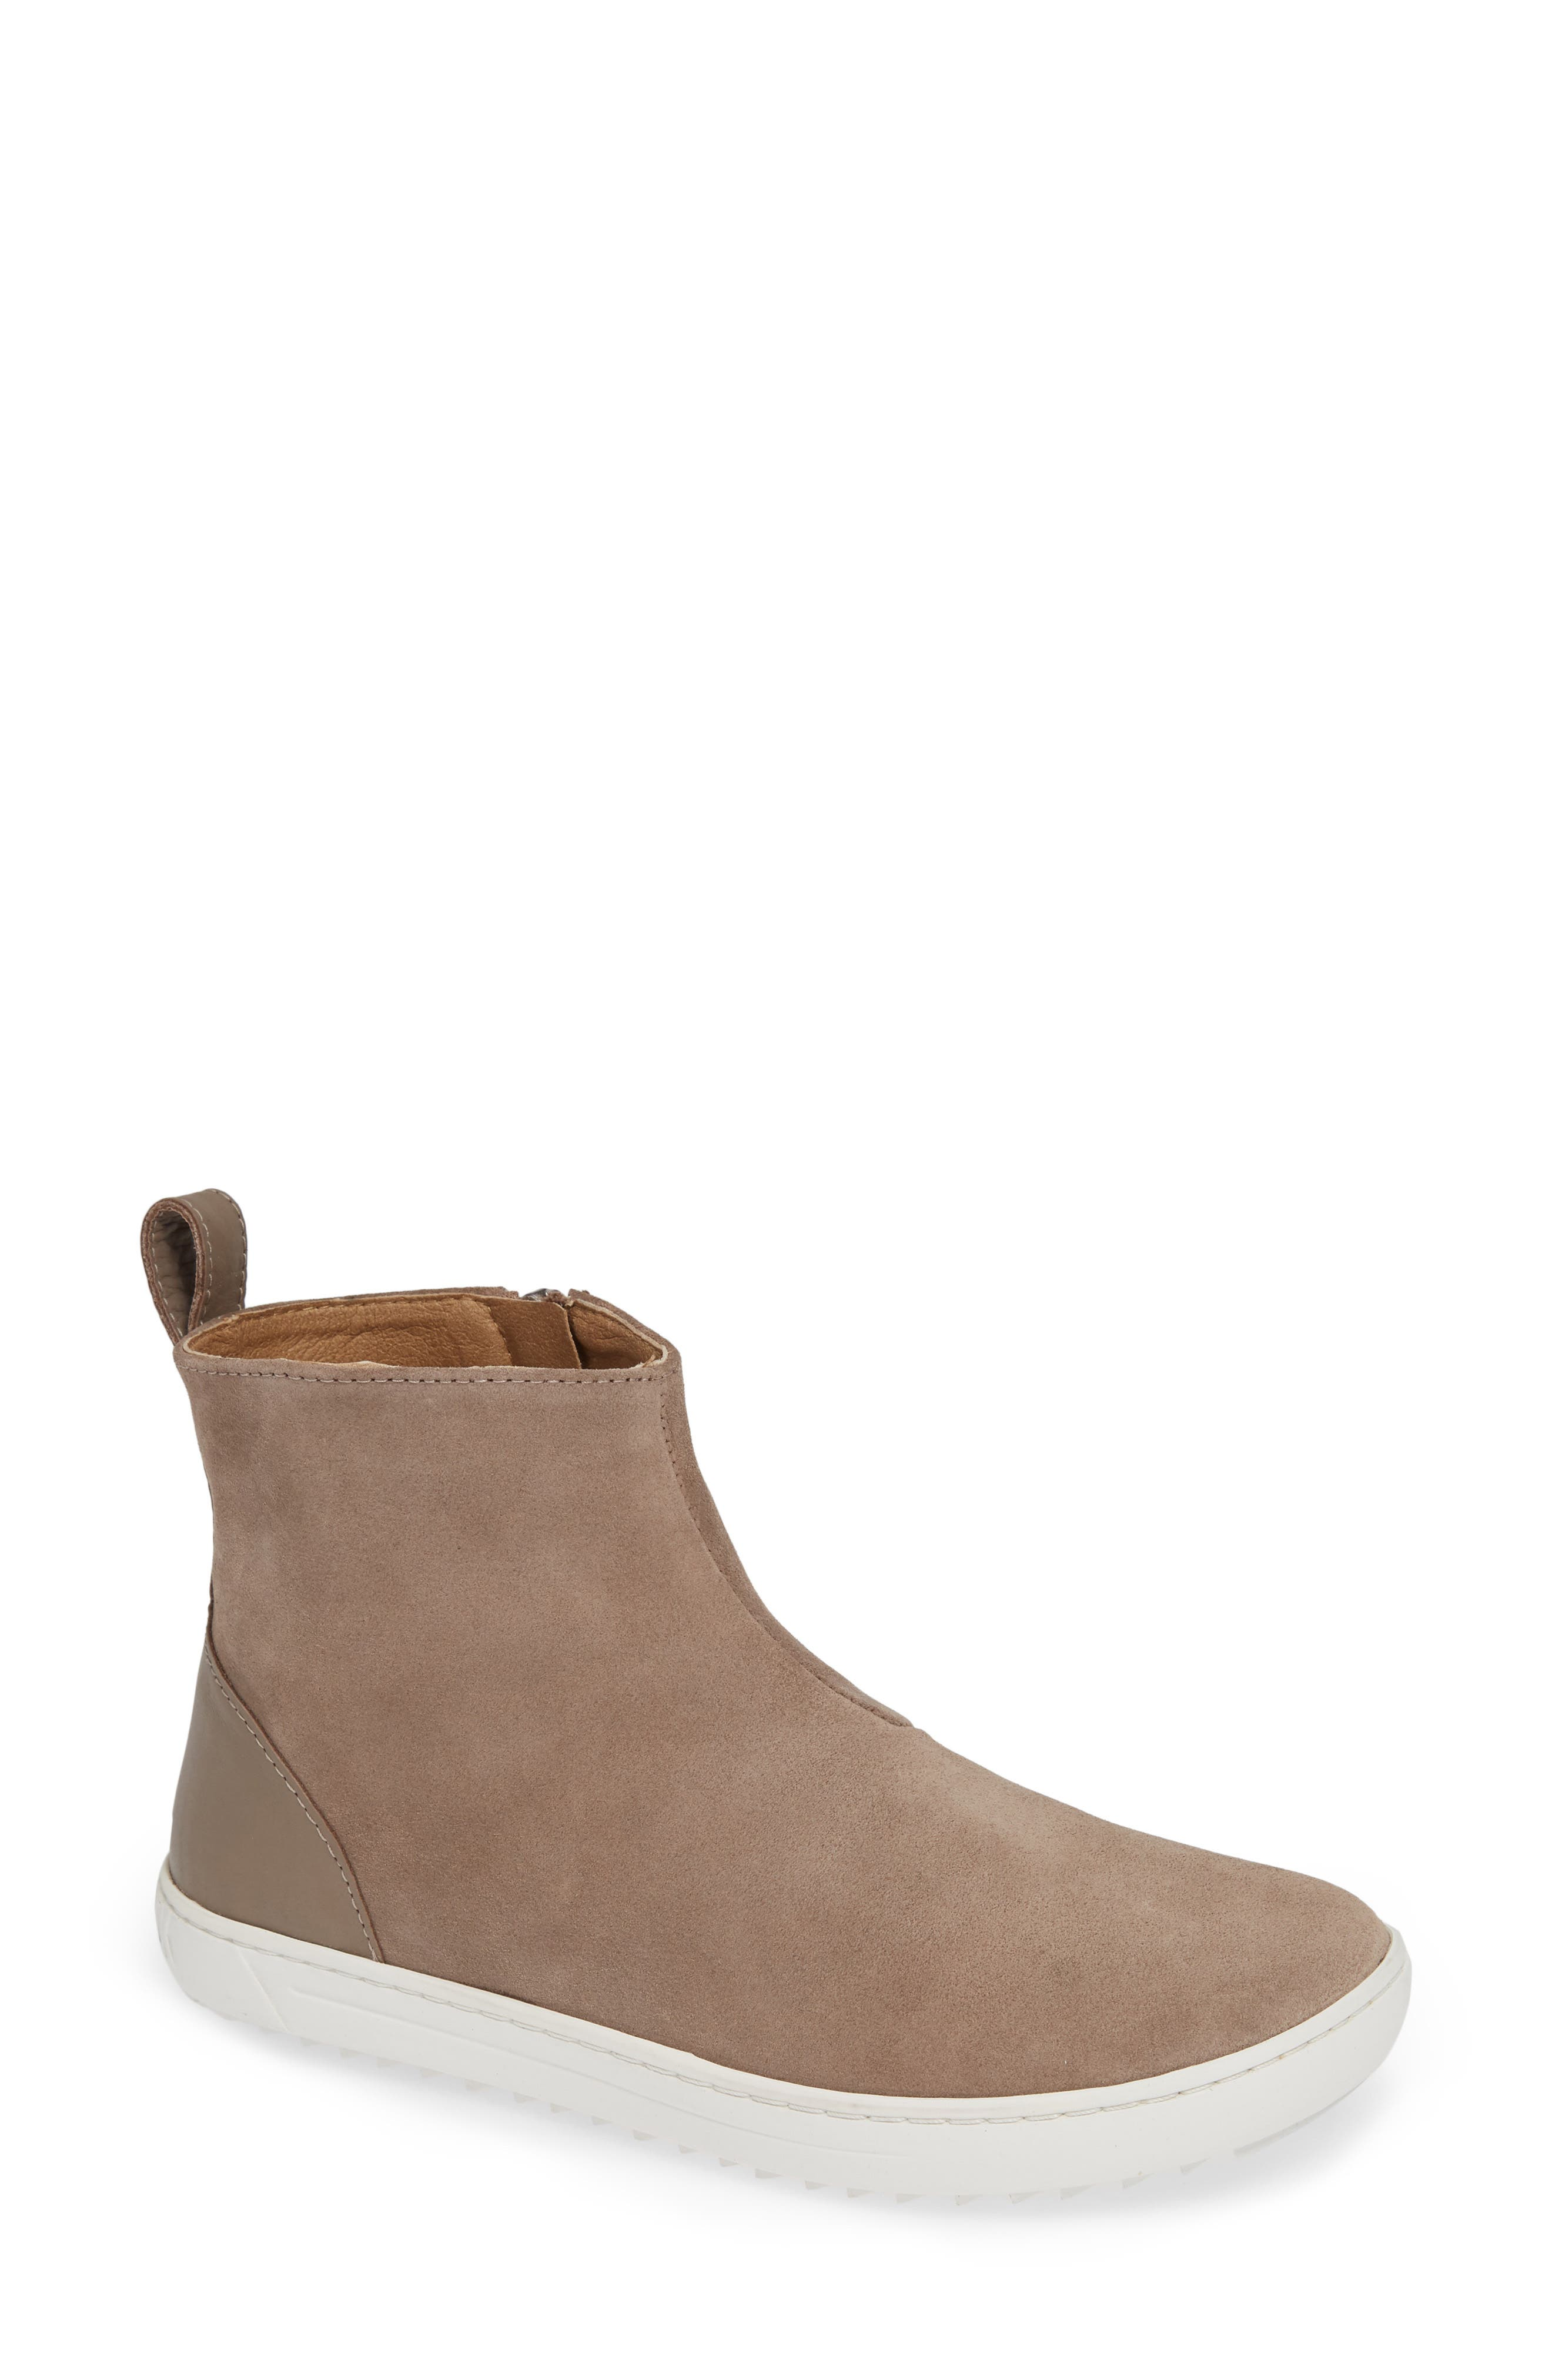 Myra High Top Sneaker,                             Main thumbnail 1, color,                             TAUPE SUEDE